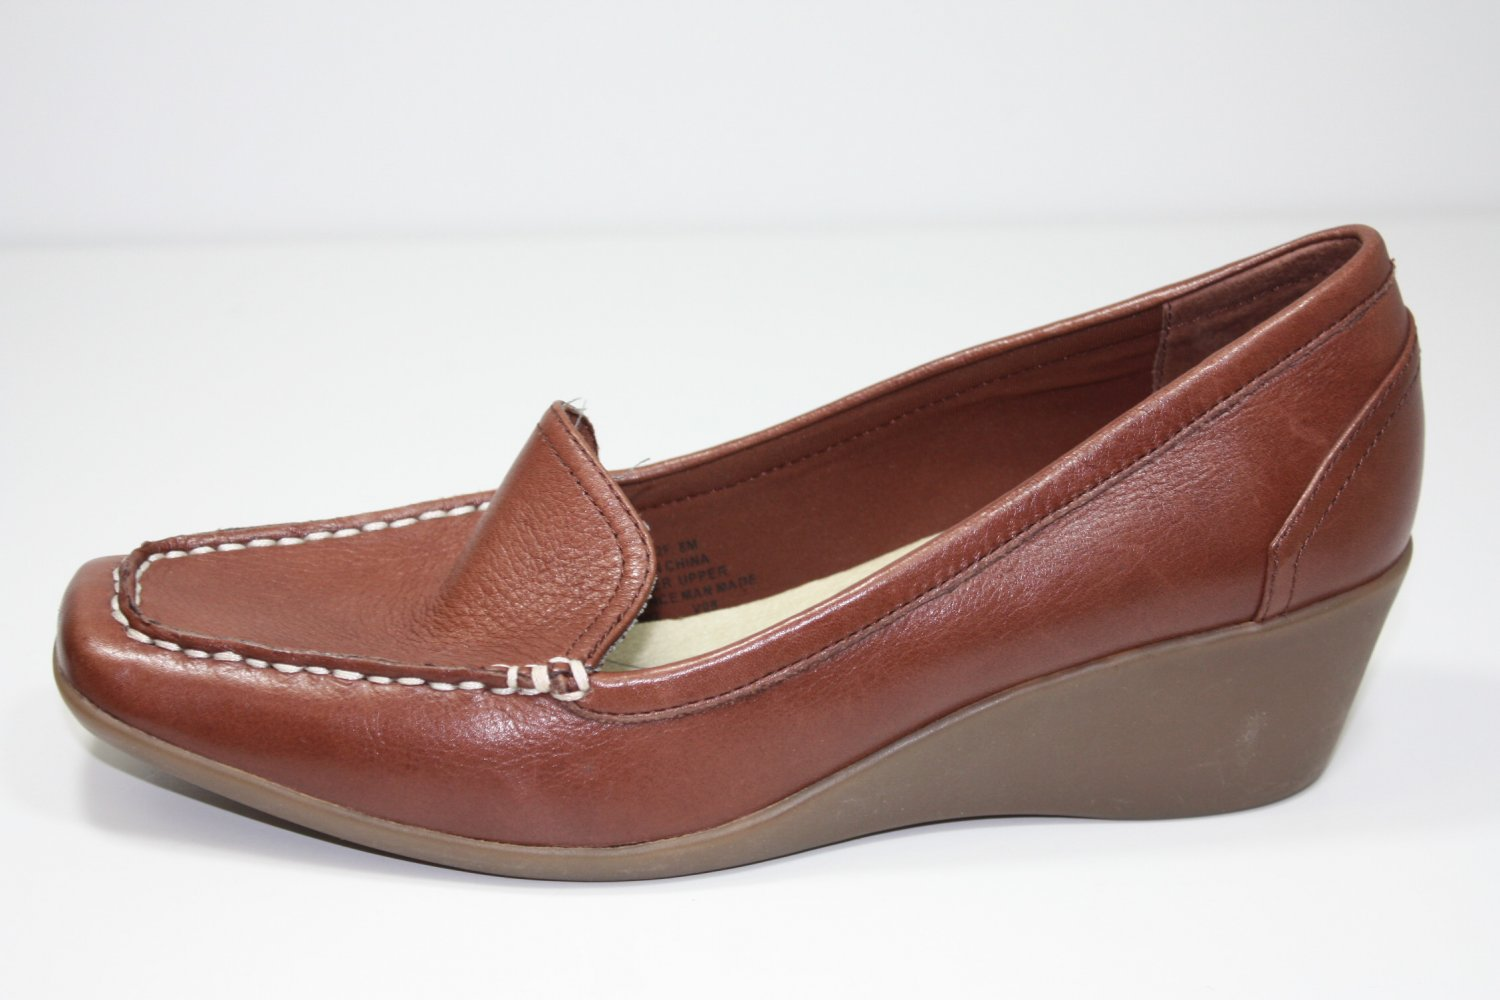 Rockport Stanwood Friar Loafers Brown Shoes US 8 $110